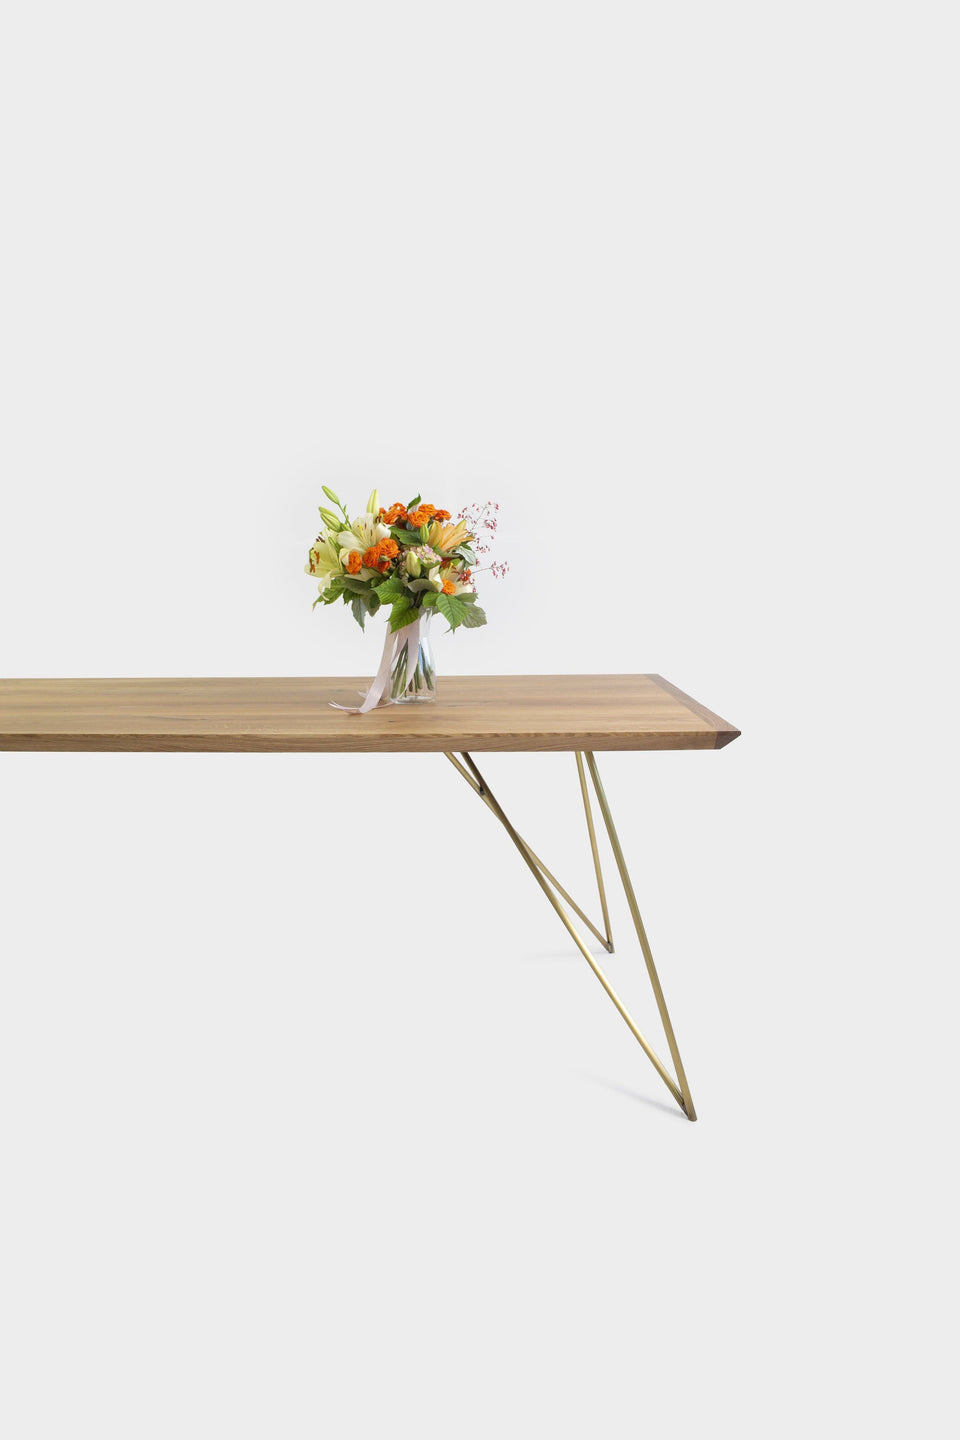 Mid-Century Modern Oak Dining Table | EVELIE-Dining Table-Liam Hardman-Hardman Design